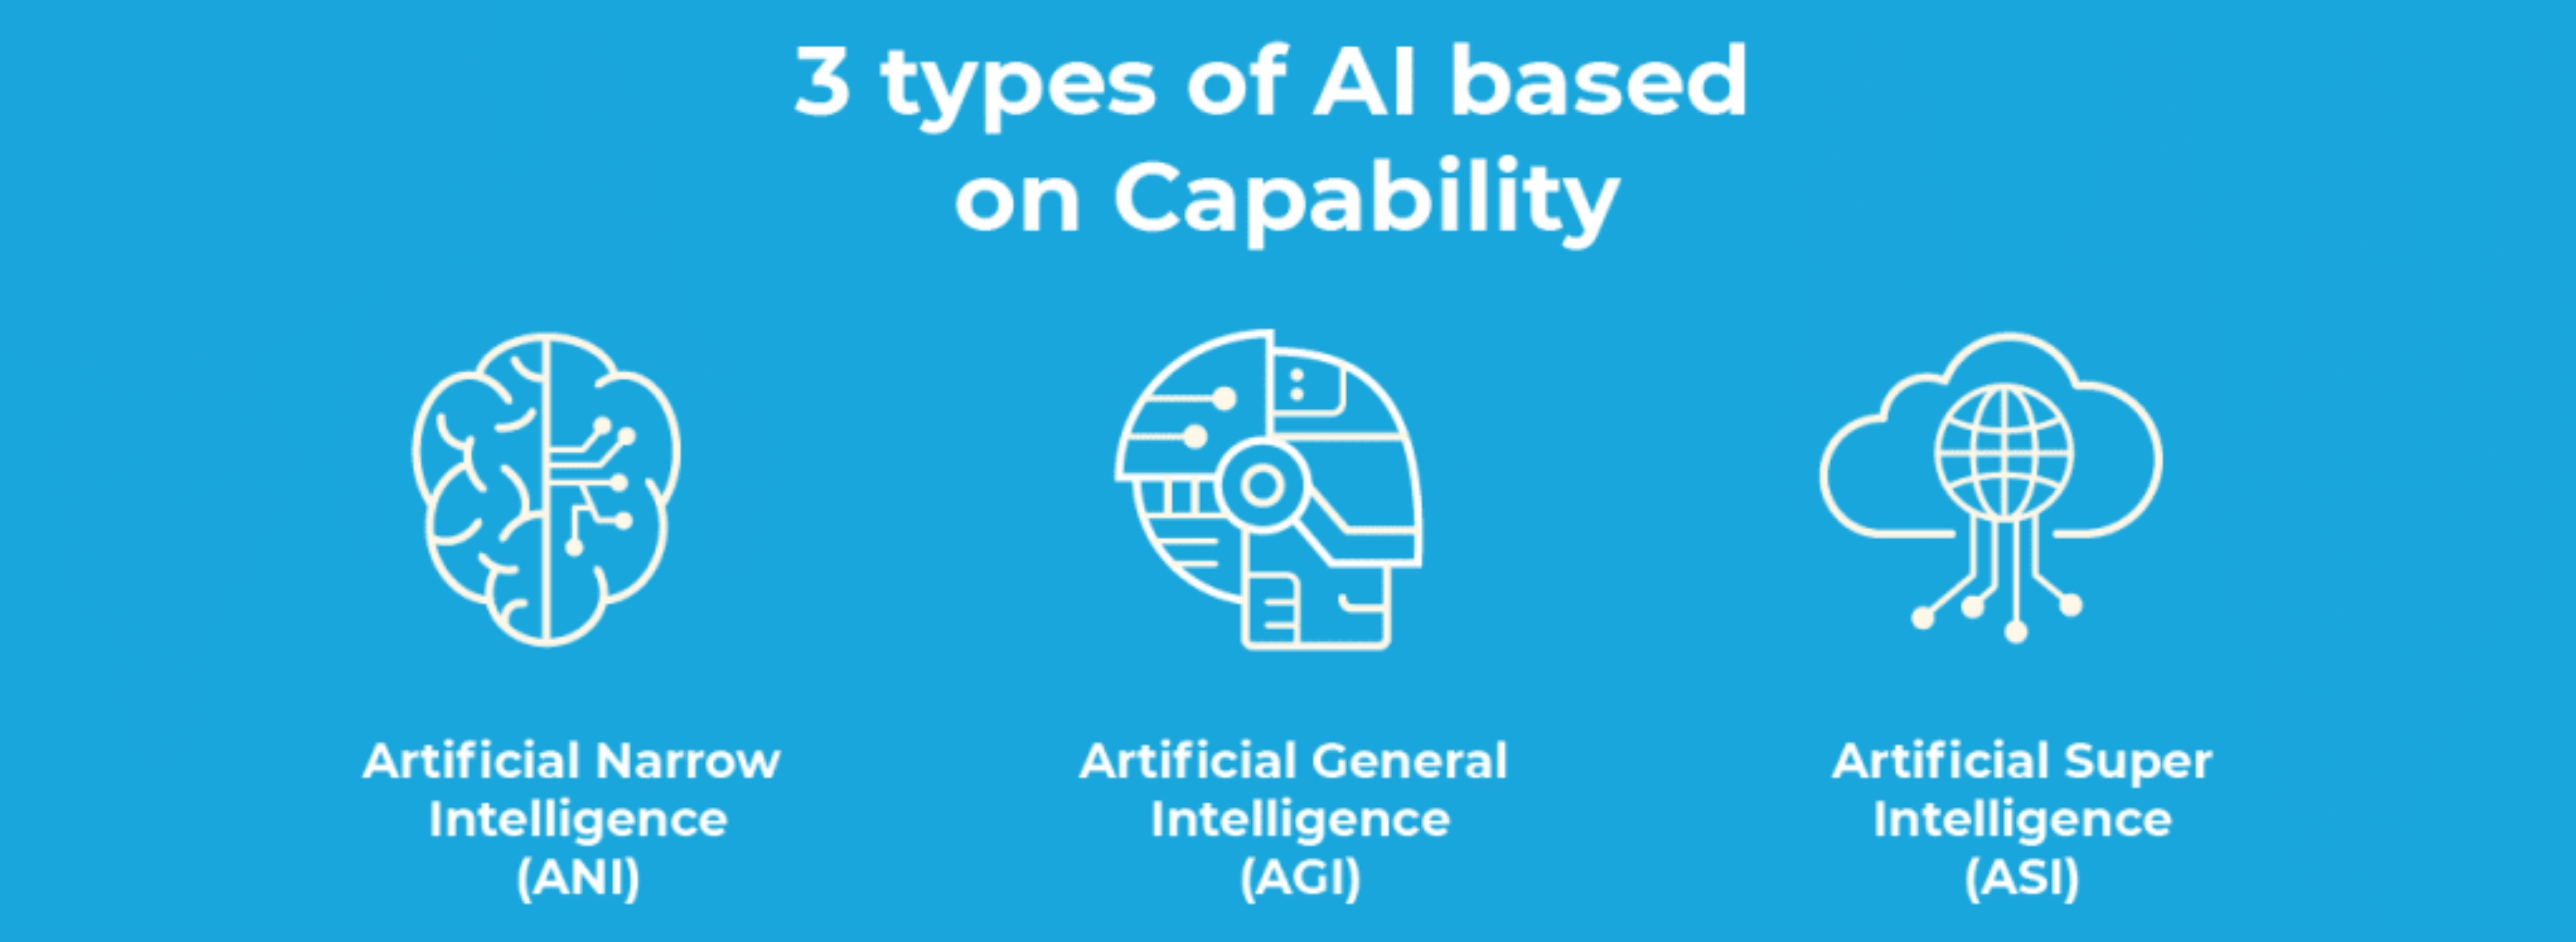 Image with texts that list out the 3 types of AI